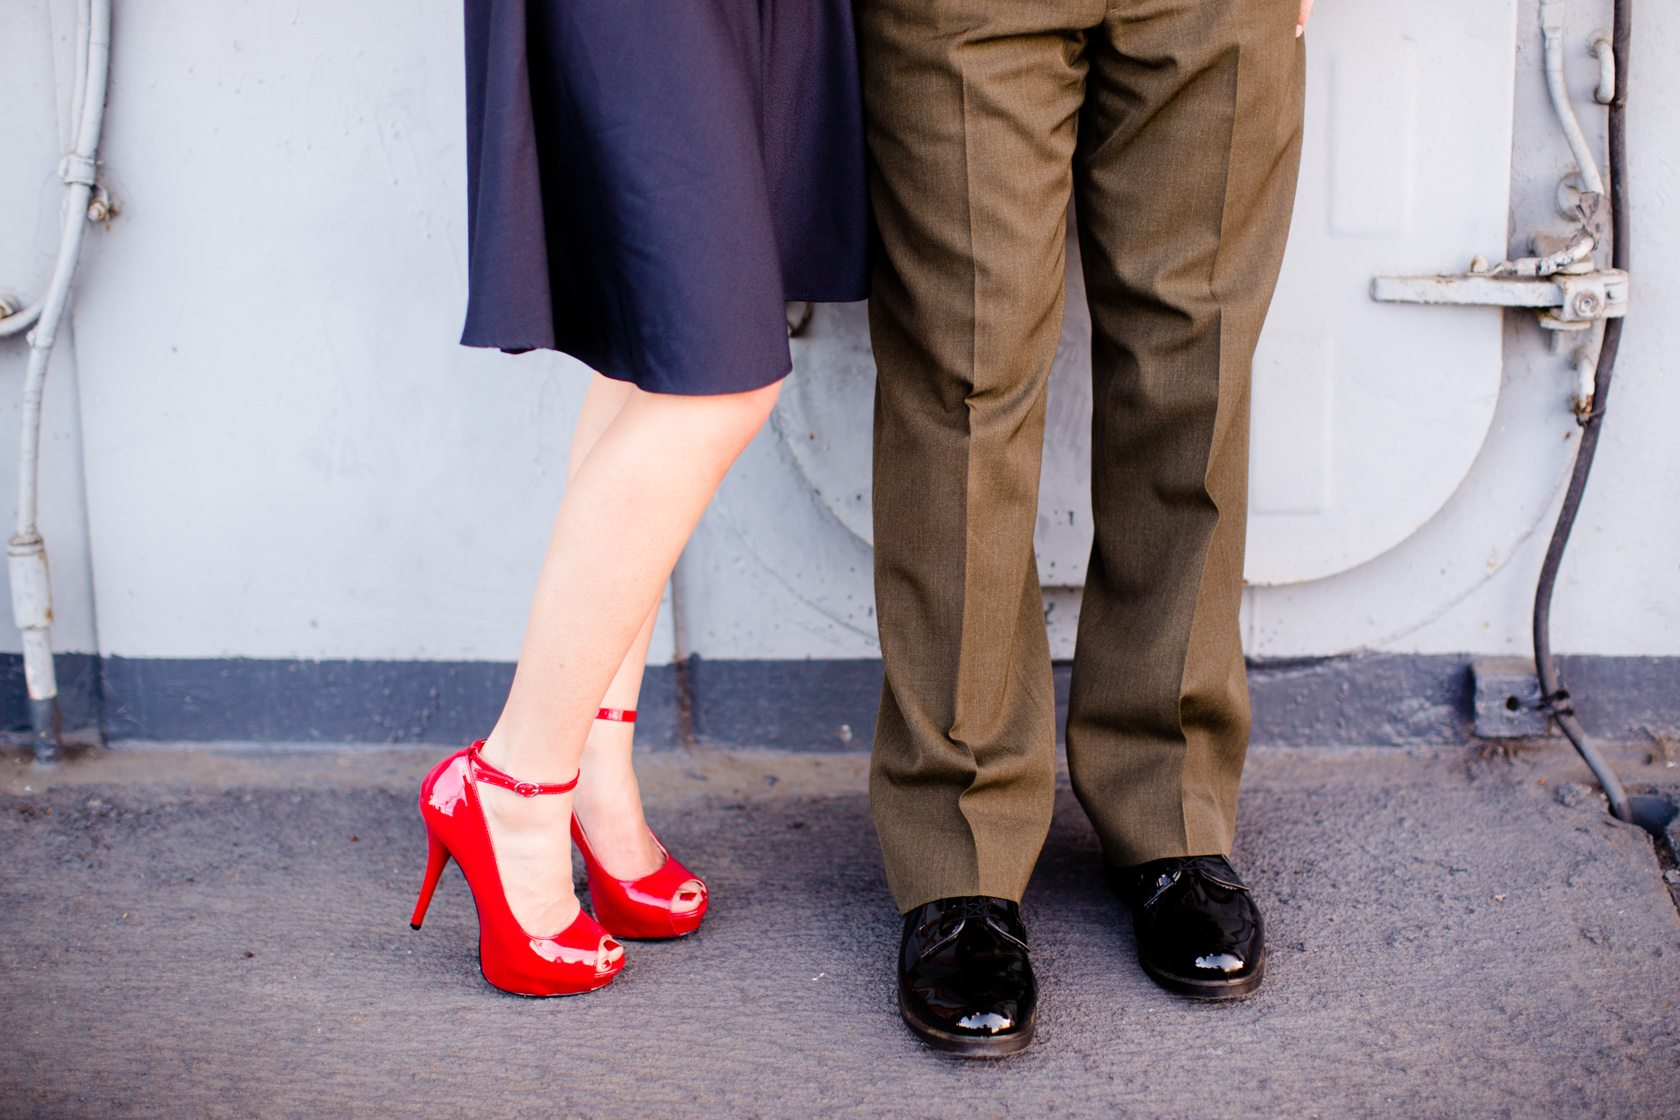 USS_Midway_Engagement_Session_23.jpg